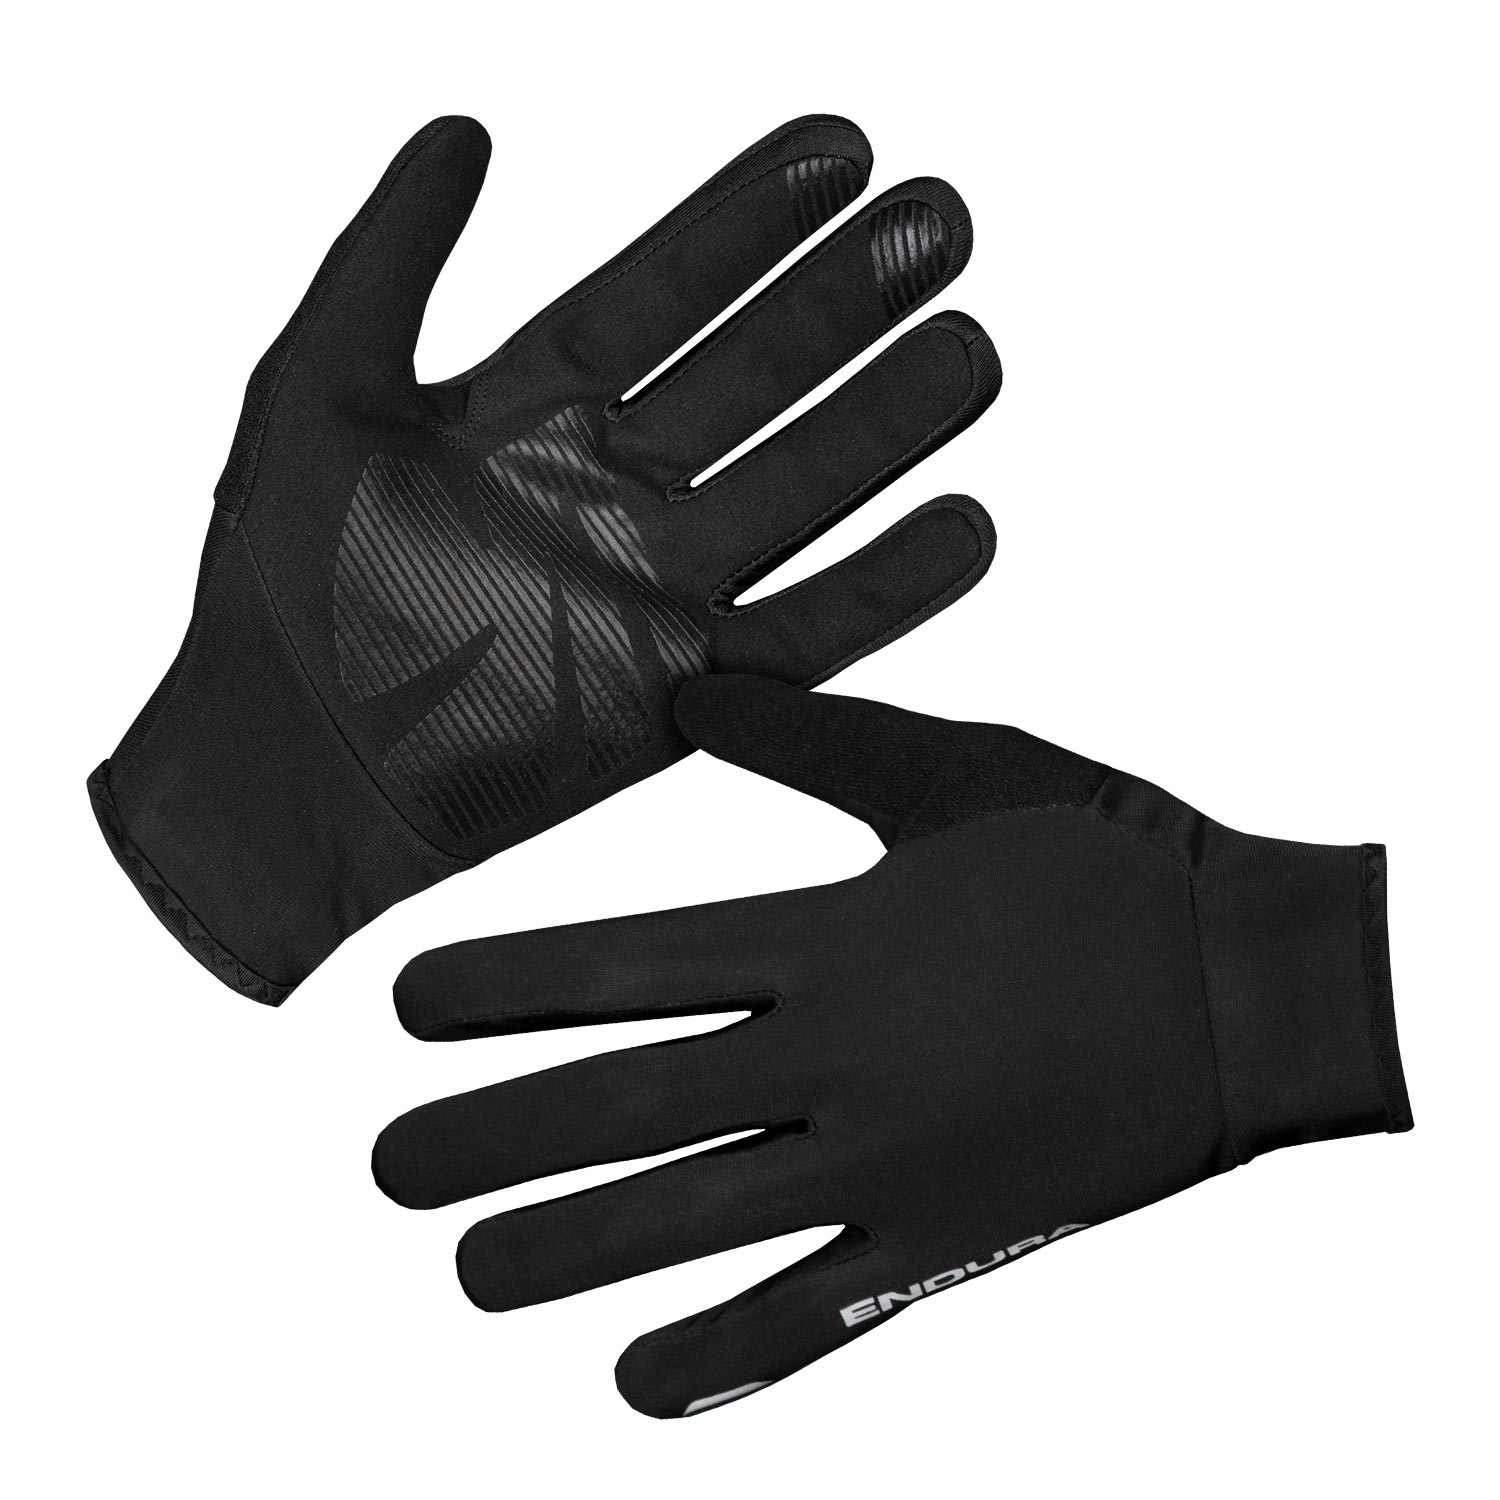 Endura FS260-Pro (Small) Thermo Cycling Gloves